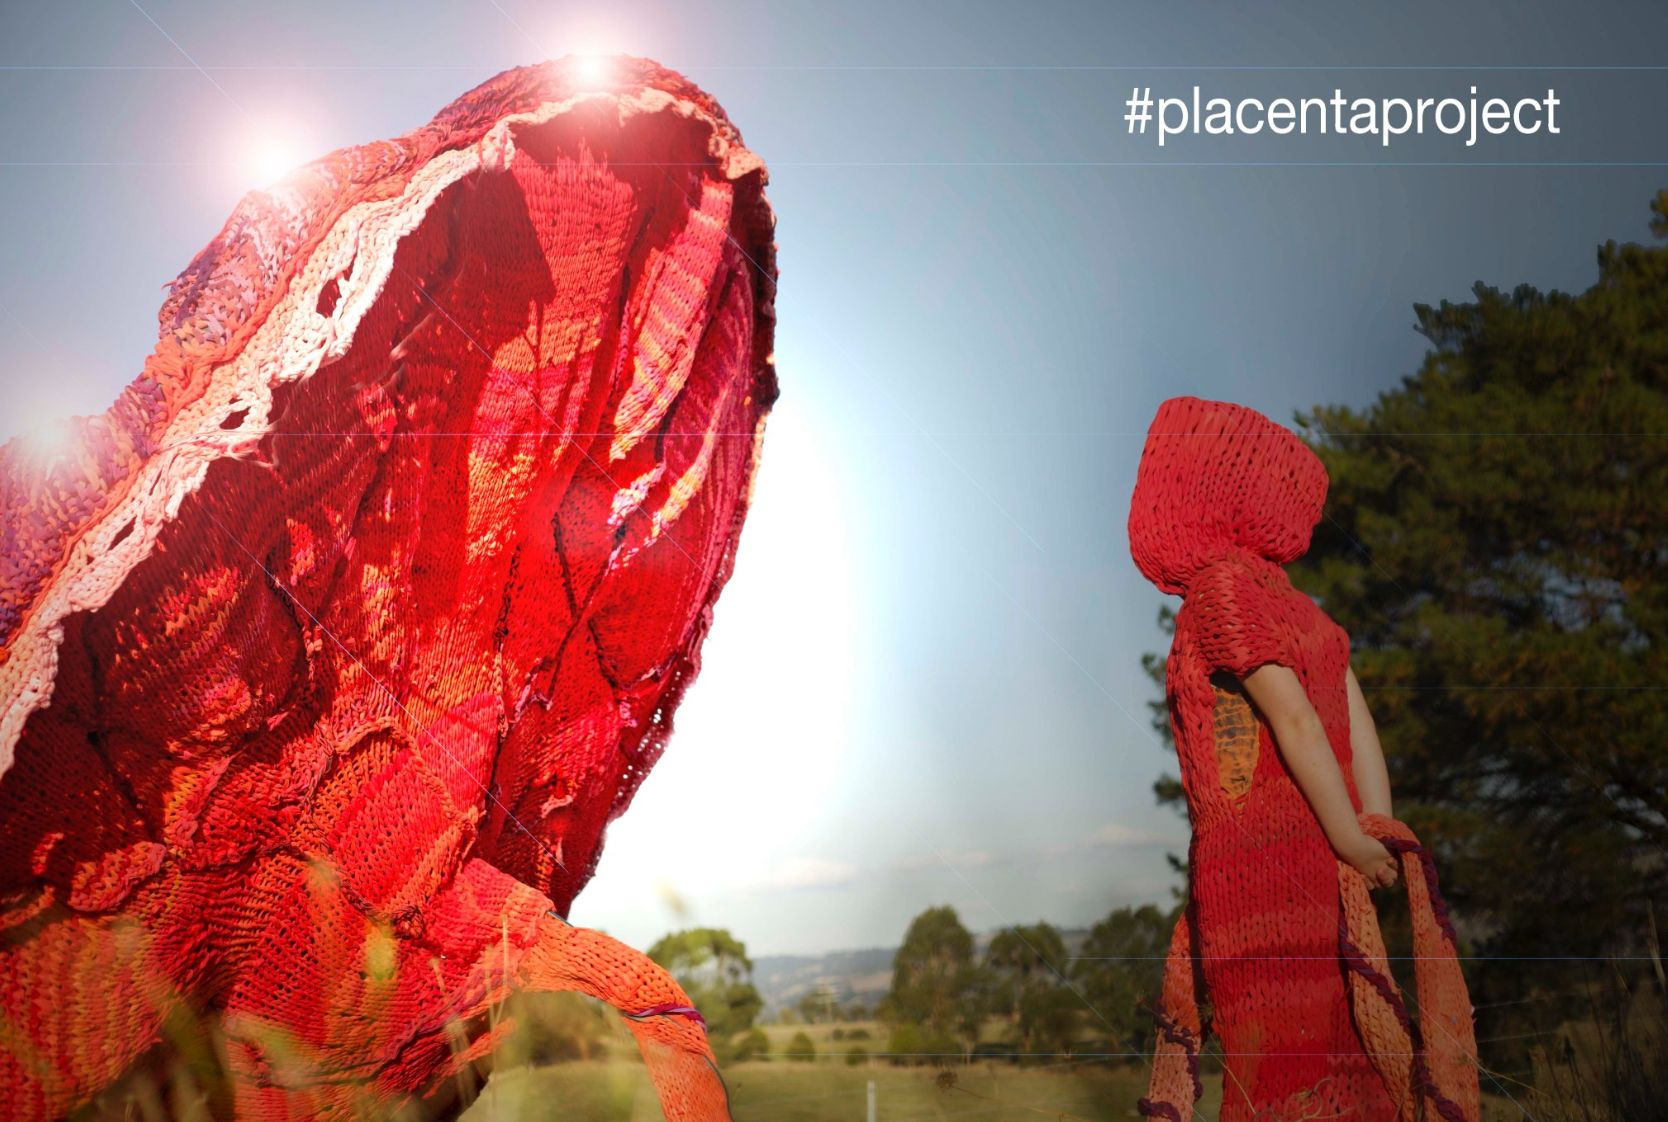 There's A 330-Pound Knitted Placenta On Display In Australia Right